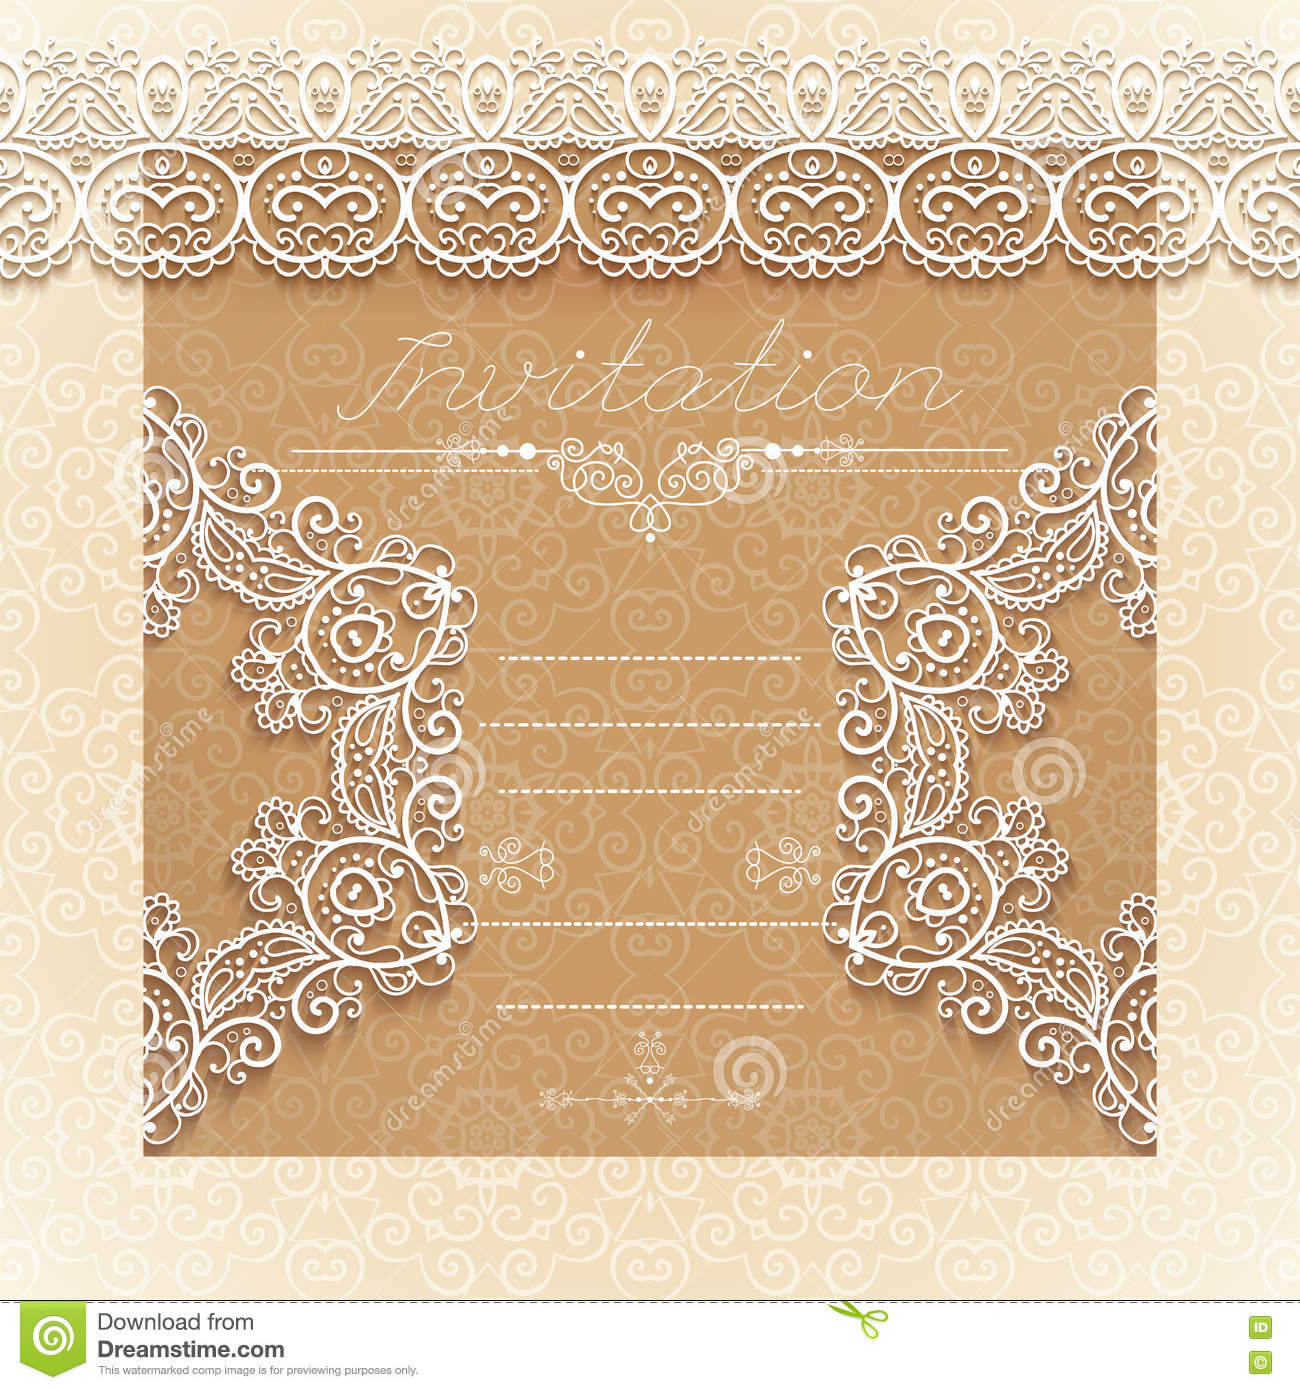 vintage wedding card or invitation with abstract lace seamless background and borders vector stock vector illustration of anniversary background 74417725 dreamstime com